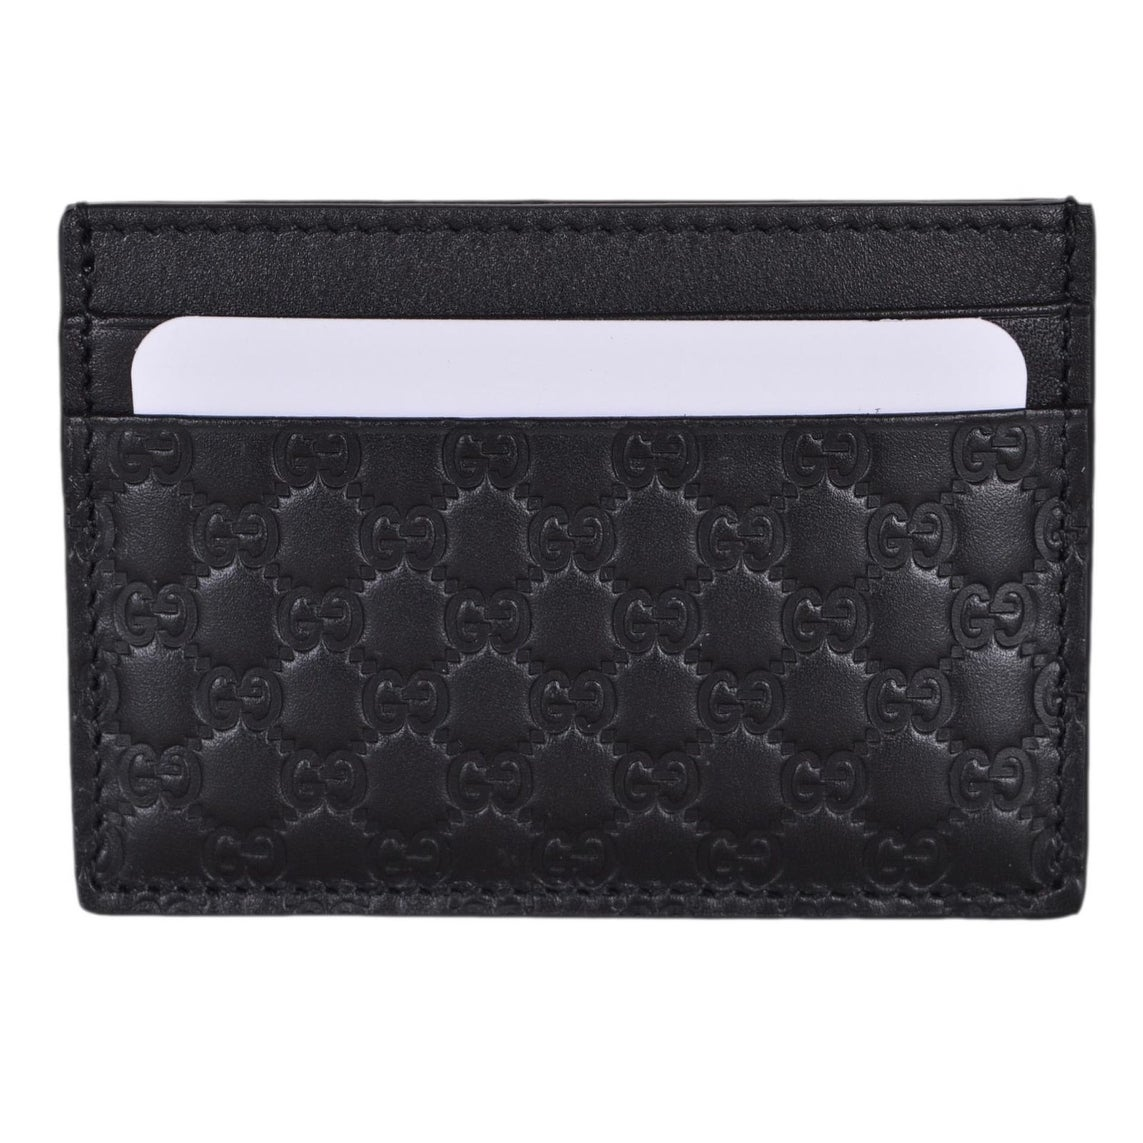 748e3bc08b7 Shop Gucci Men s 262837 Black Leather Micro GG Guccissima Small Card Case -  4